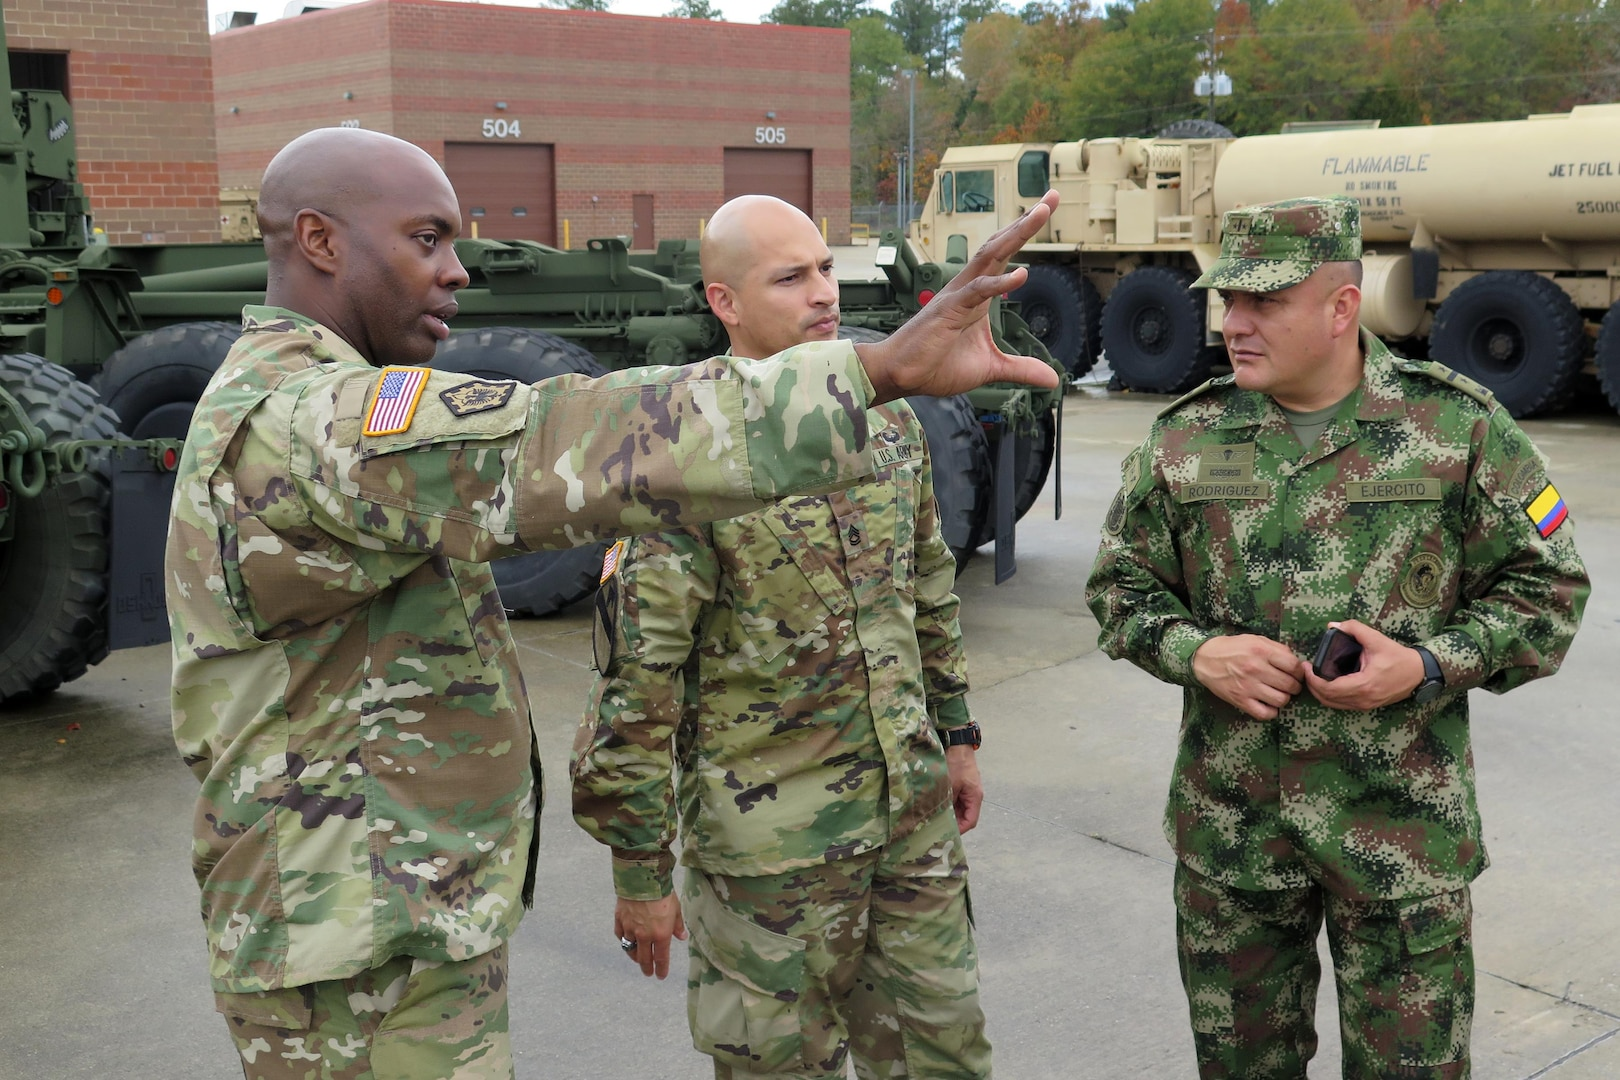 U.S. Army 1st Lt. Omar Benjamin (left), with the South Carolina Army National Guard's Combined Support Maintenance Shop, answers questions from Colombian Army Lt. Col. Hernando Rodriguez through Army National Guard Sgt. 1st Class Alexander Lombana, Nov. 19, 2015. The South Carolina National Guard held a Subject Matter Expert Exchange with its Partner Nation Nov. 15-21, 2015. While in South Carolina, the five Colombian officers toured various sites and met with their National Guard counterparts seeing firsthand the areas affected by the floods, and how the Guard responded working alongside civilian first responders and state and local emergency management. Since its launch in 2012, when the South Carolina National Guard introduced its State Partnership Program (SPP) with the Republic of Colombia, S.C., has focused on establishing long-term relationships where Colombia and South Carolina can promote mutual interests and build lasting capabilities. In the past year the South Carolina National Guard has held 26 engagements with its partner nation. (U.S. Air Force photo by 1st Lt. Stephen D. Hudson)